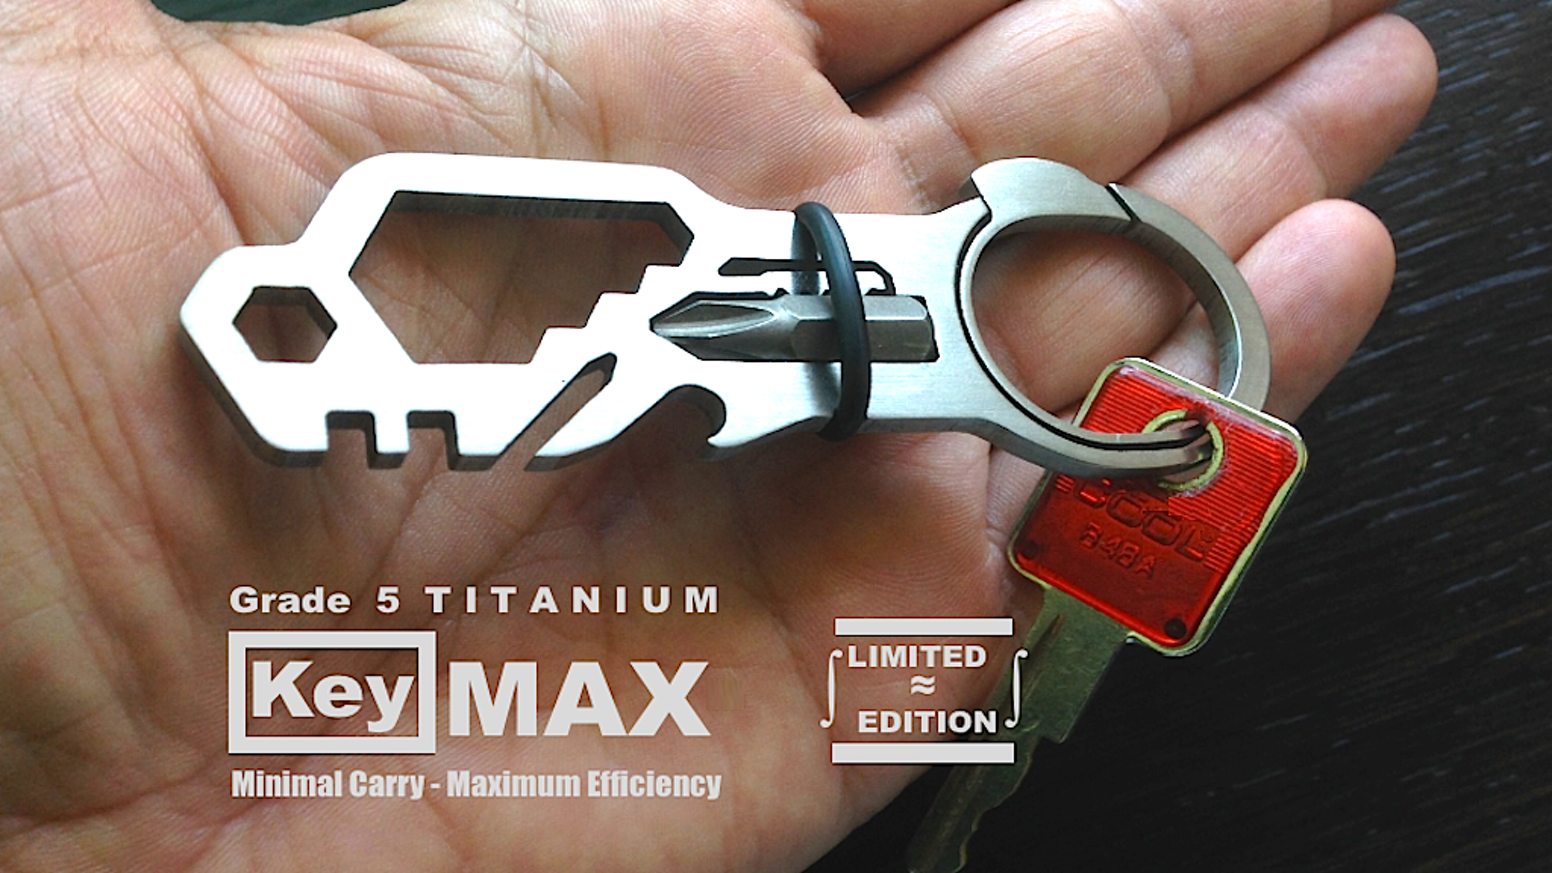 A Mini Tool-Kit to Go!  Quick Clip Push Button Key Ring Lightweight Grade 5 Titanium EDC for your Car, Bike, Home Made in the USA